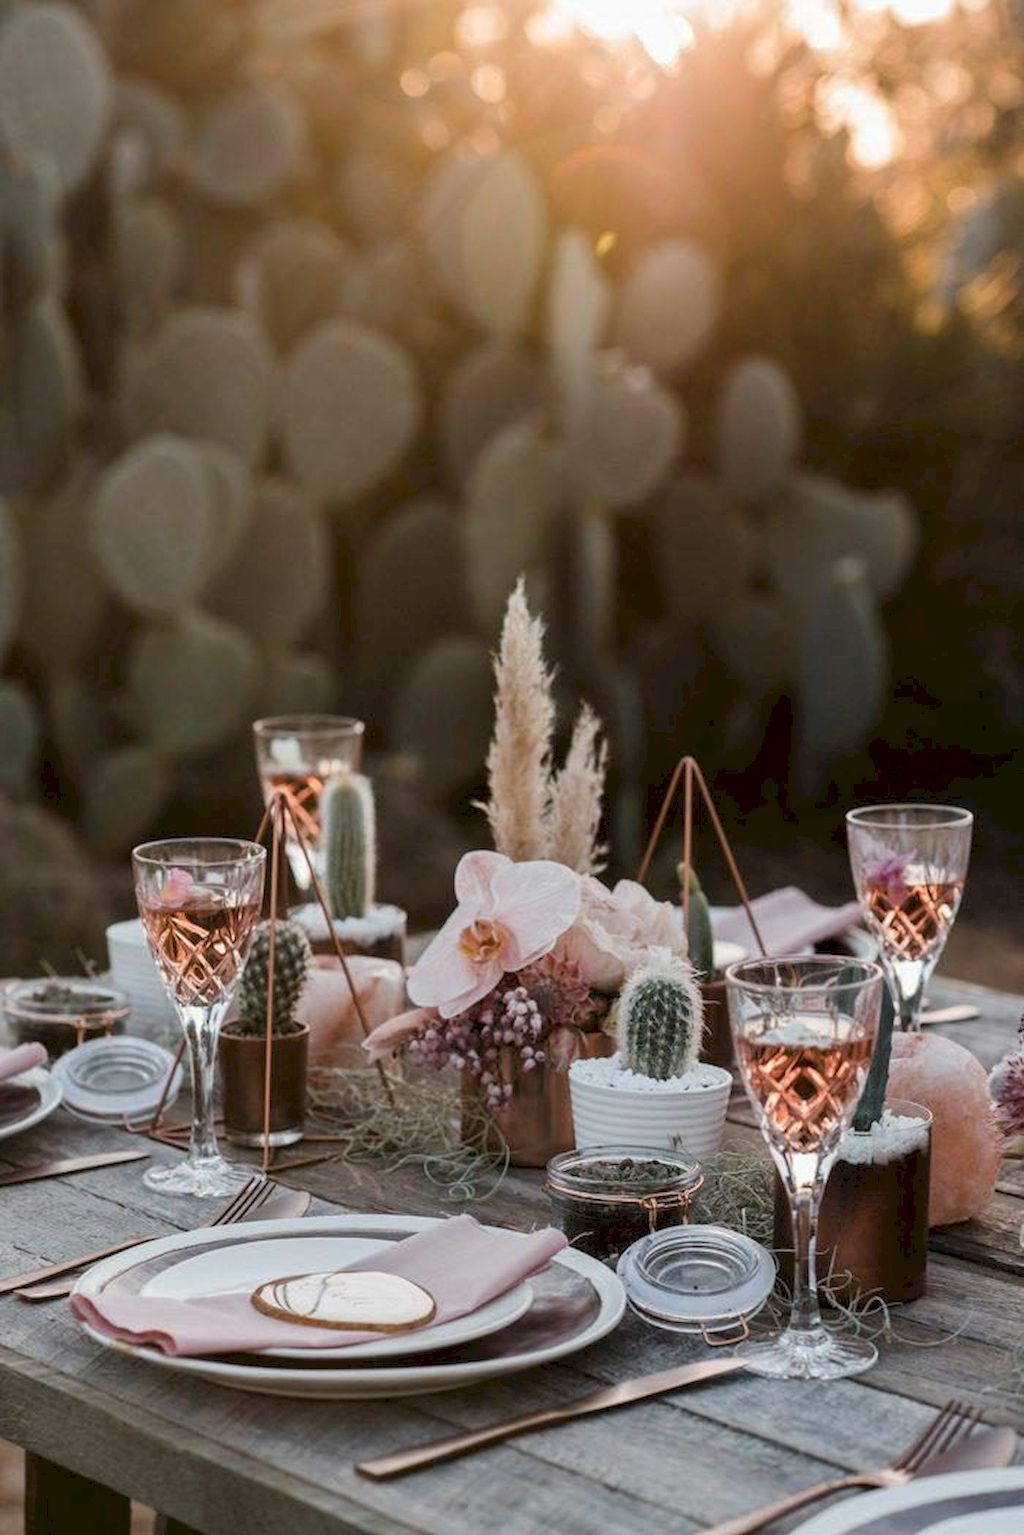 Captivating Beautify Your Residence For The First Marriage Ceremony In Your Home Bohemian Wedding Decorations Whimsical Wedding Inspiration Desert Wedding